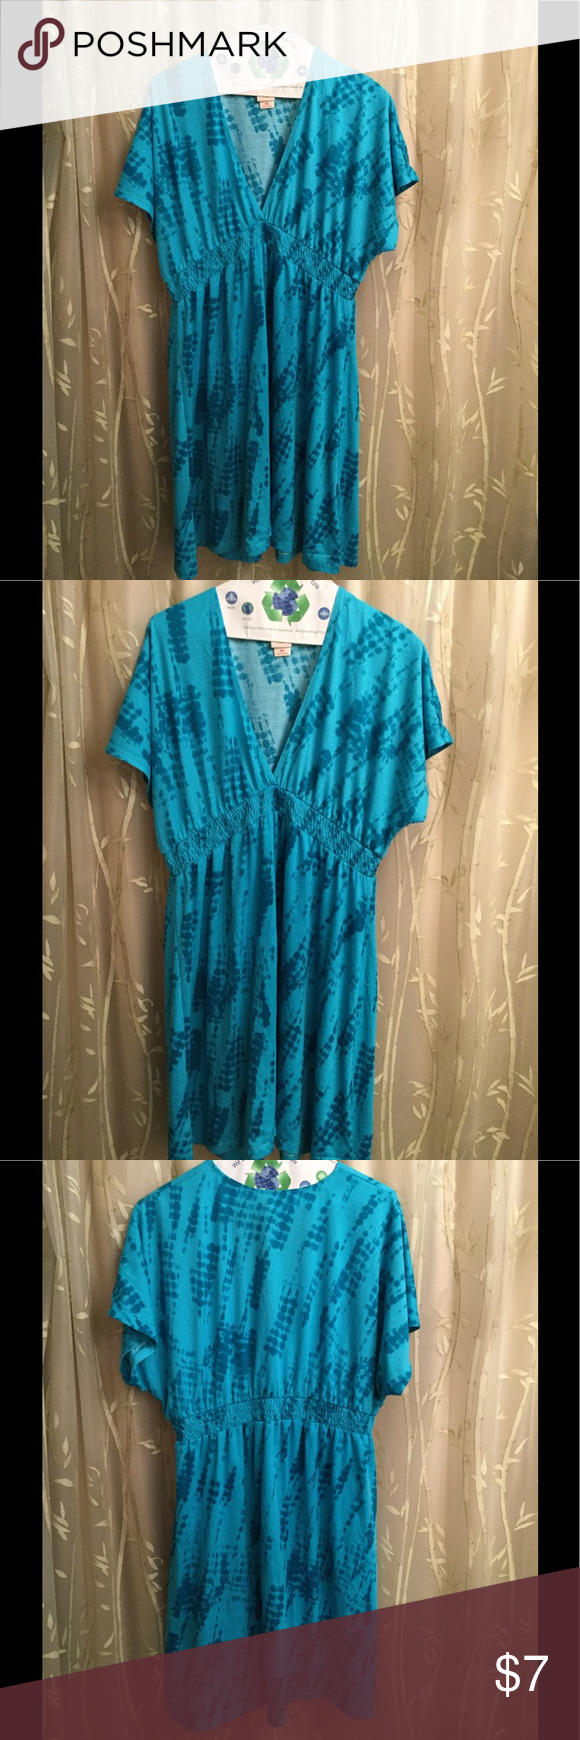 """Dress Beautiful Blue Shades Mossimo Dress has V-Neck & Elastic Waist, Short Sleeve. 2 beautiful shades of blue, approx. 37""""L(shoulder 2Hem) 95% cotton 5% spandex. Could be used as swim suit coverup. Worn twice, like new excellent condition. Mossimo Supply Co. Dresses"""